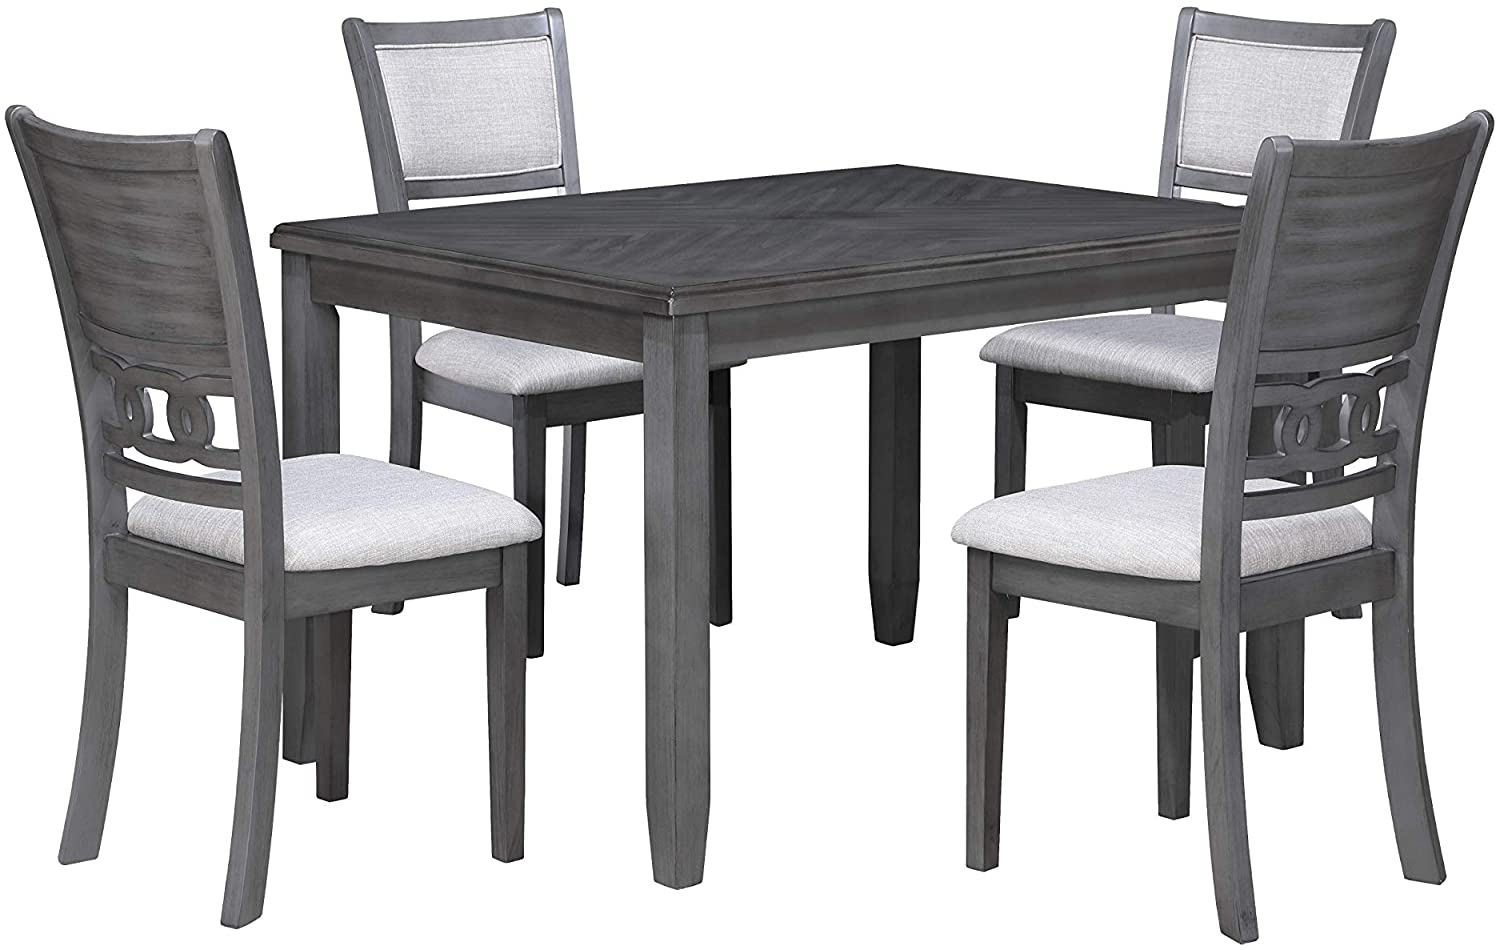 New Classic Furniture Gia 5-Piece Dining Table with Four Chairs, 48-Inch, Gray, Set